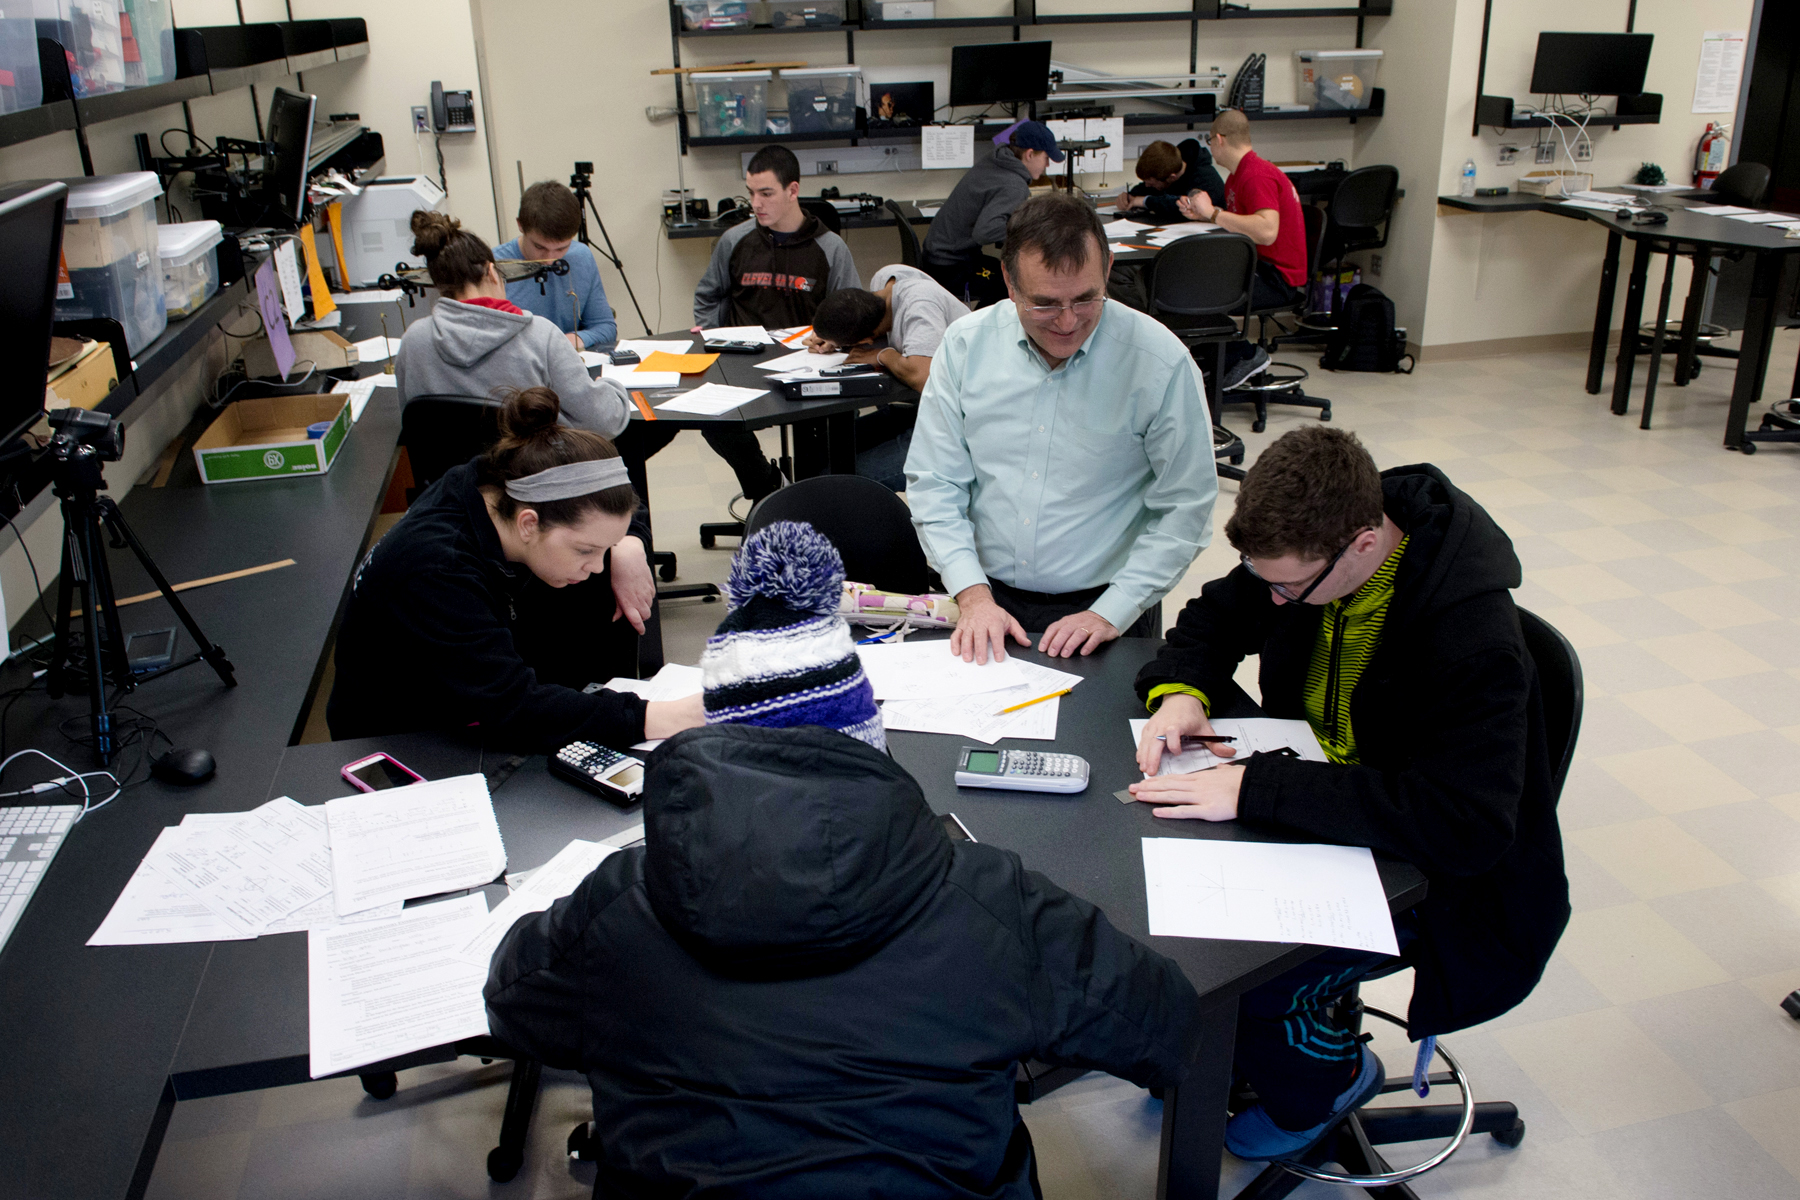 Professor with students in physics lab